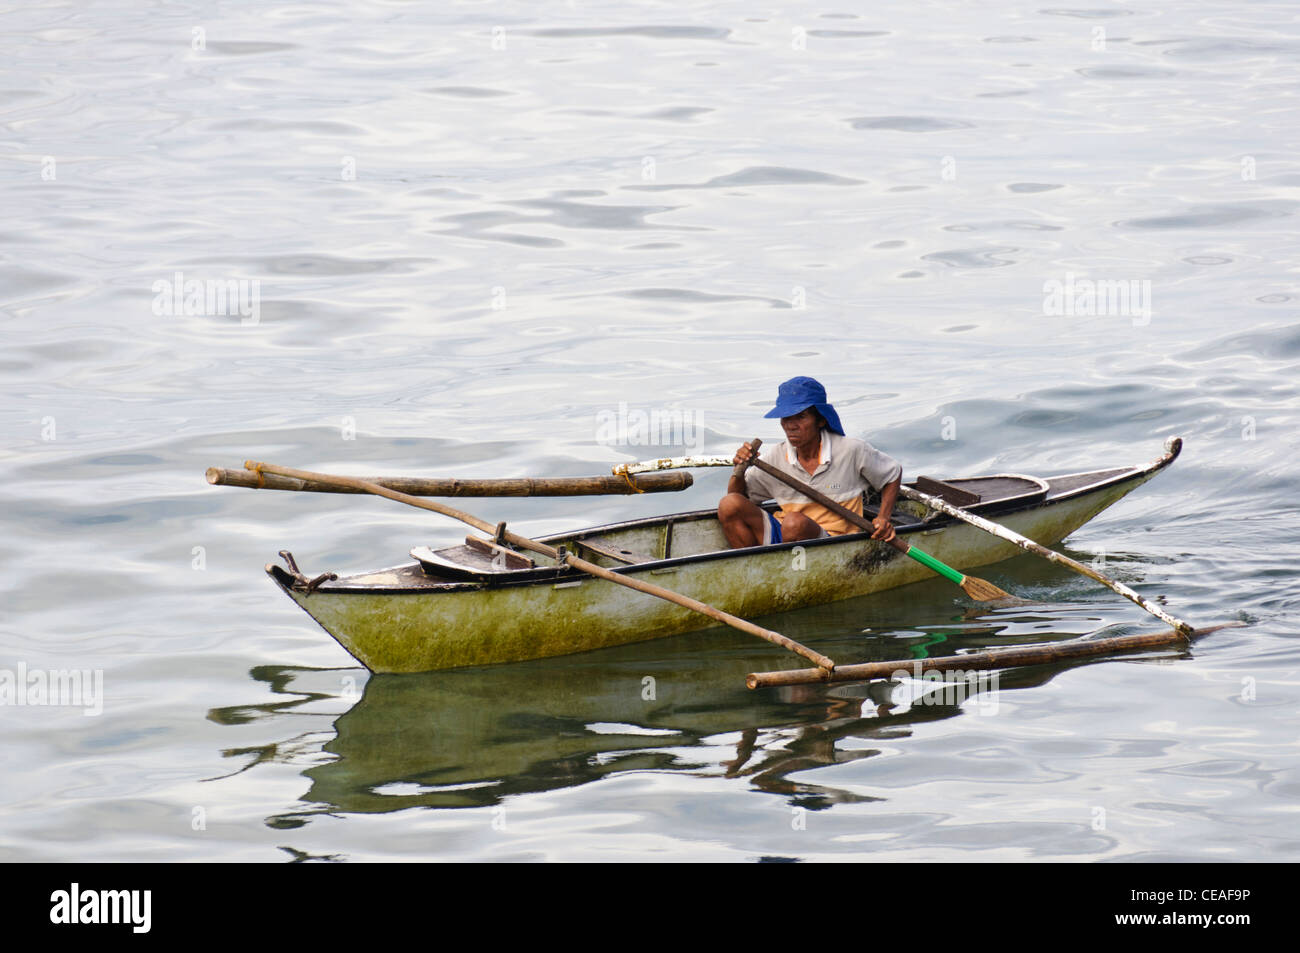 Old Asian man with blue cap rowing a small Philippine outrigger boat, also  called banca or banka in the ocean